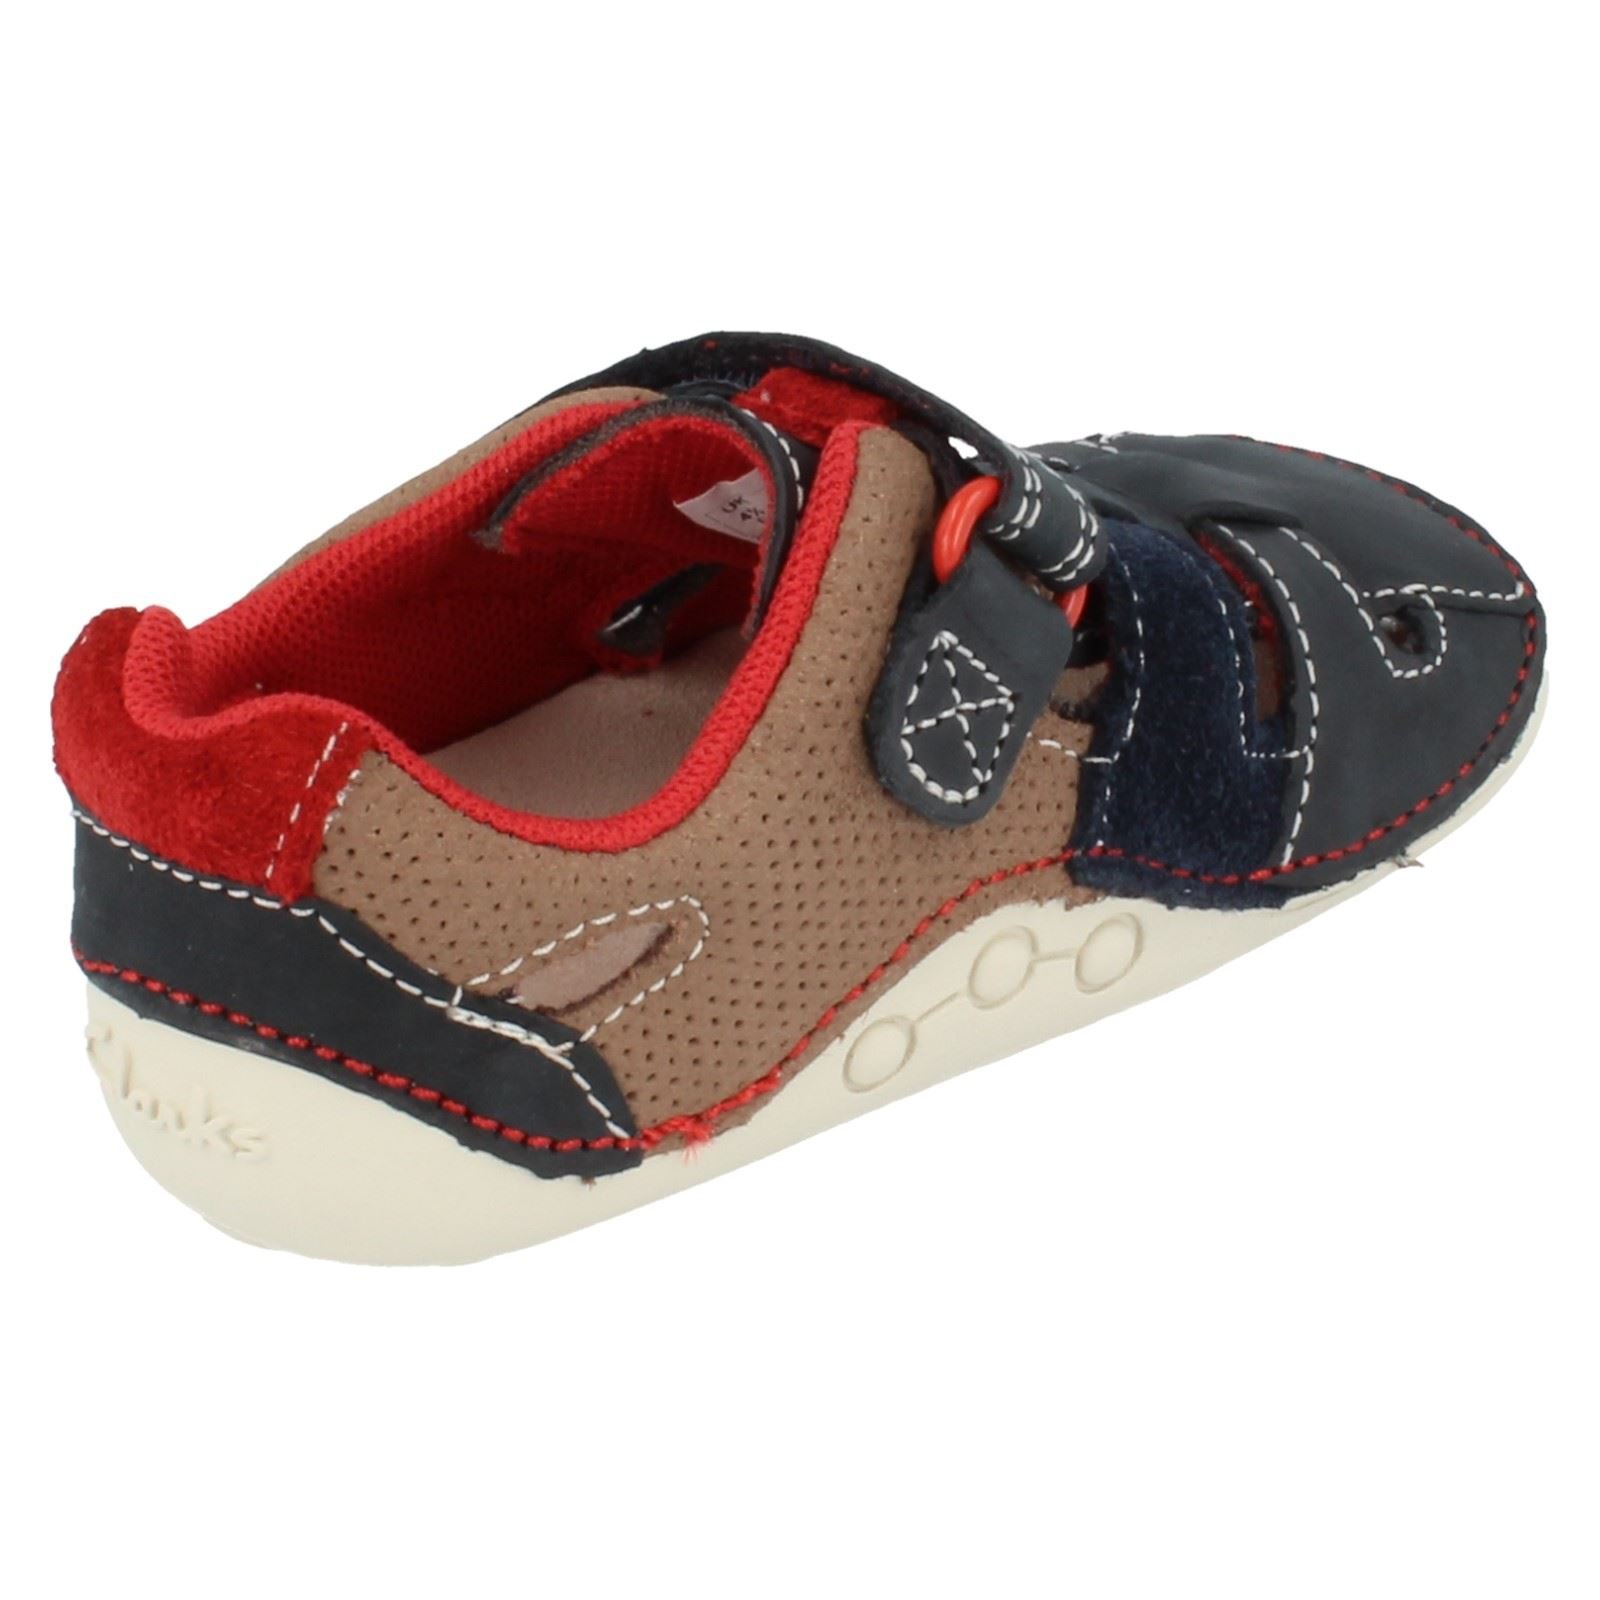 5210749eed1 Boys Clarks PreWalkers First Shoes  Tiny Artie